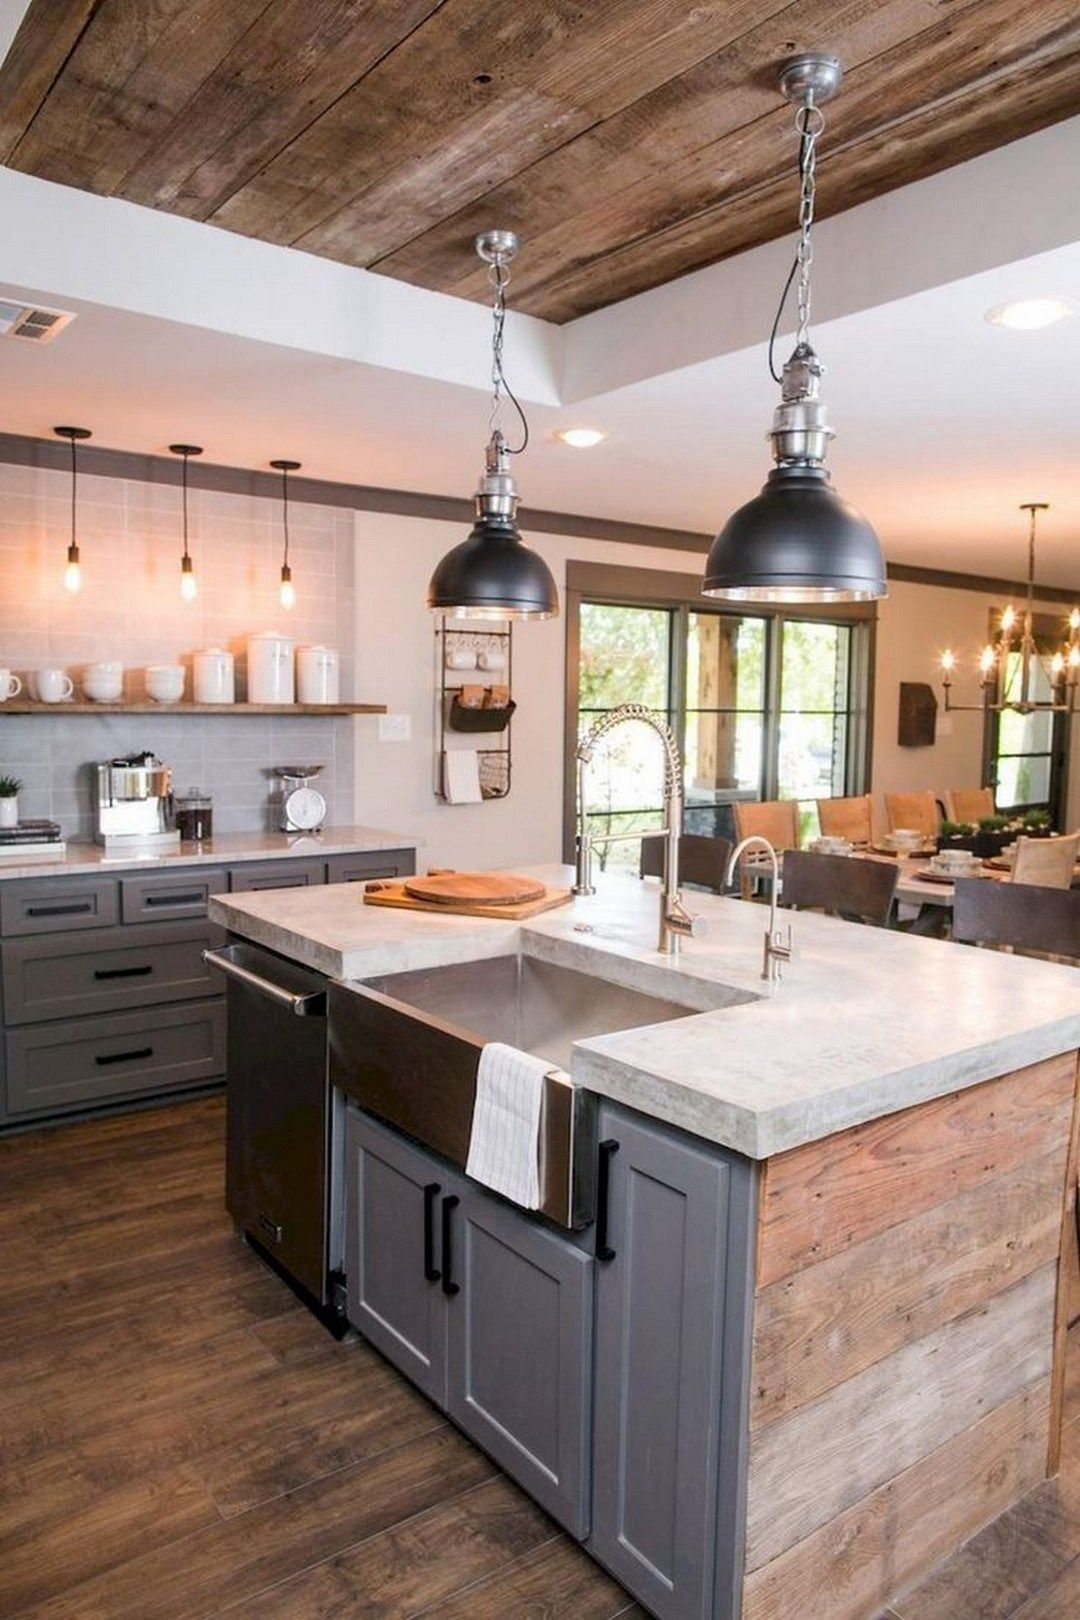 Farmhouse Duo Kitchen Kitchen The Home Depot in 2020